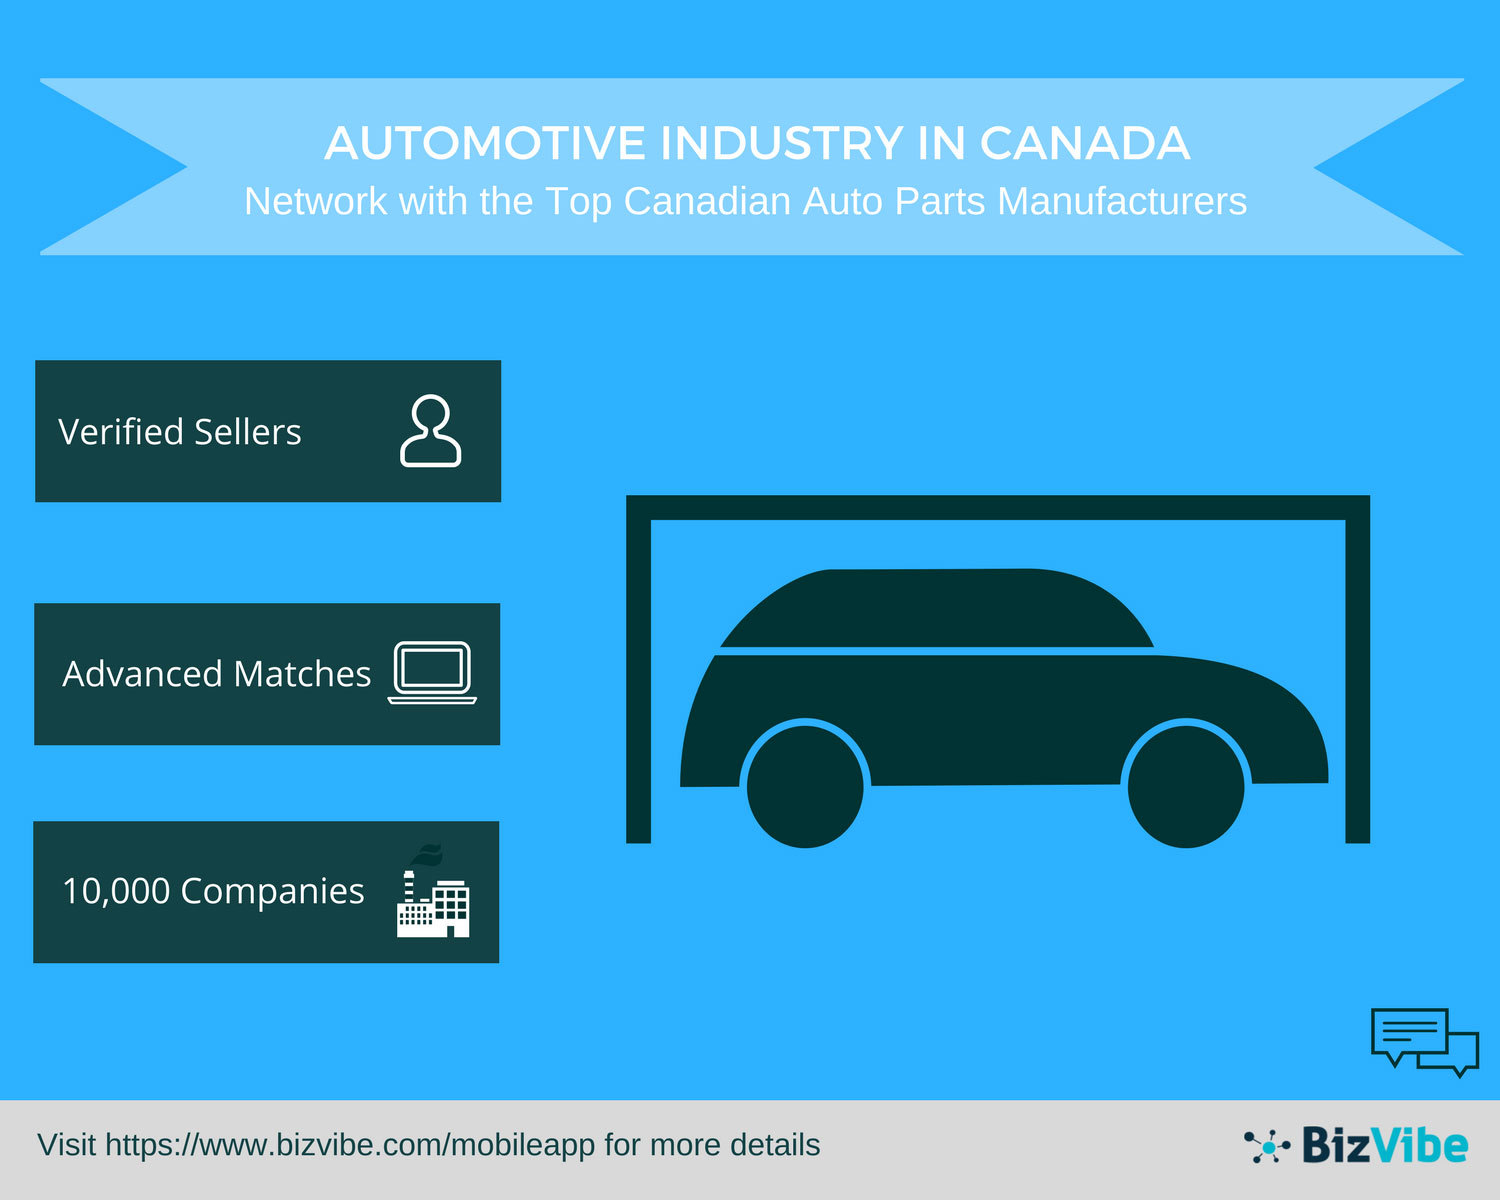 Automotive Industry In Canada New B2b Networking Platform For Canadian Auto Parts Manufacturers By Bizvibe Business Wire